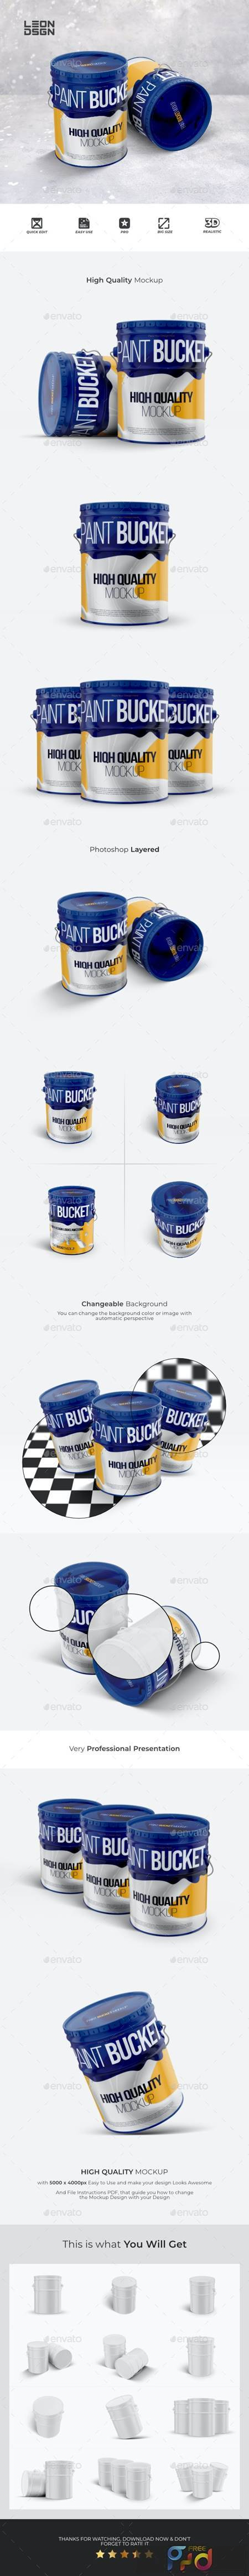 Paint Bucket Tin Mockup 27486917 1